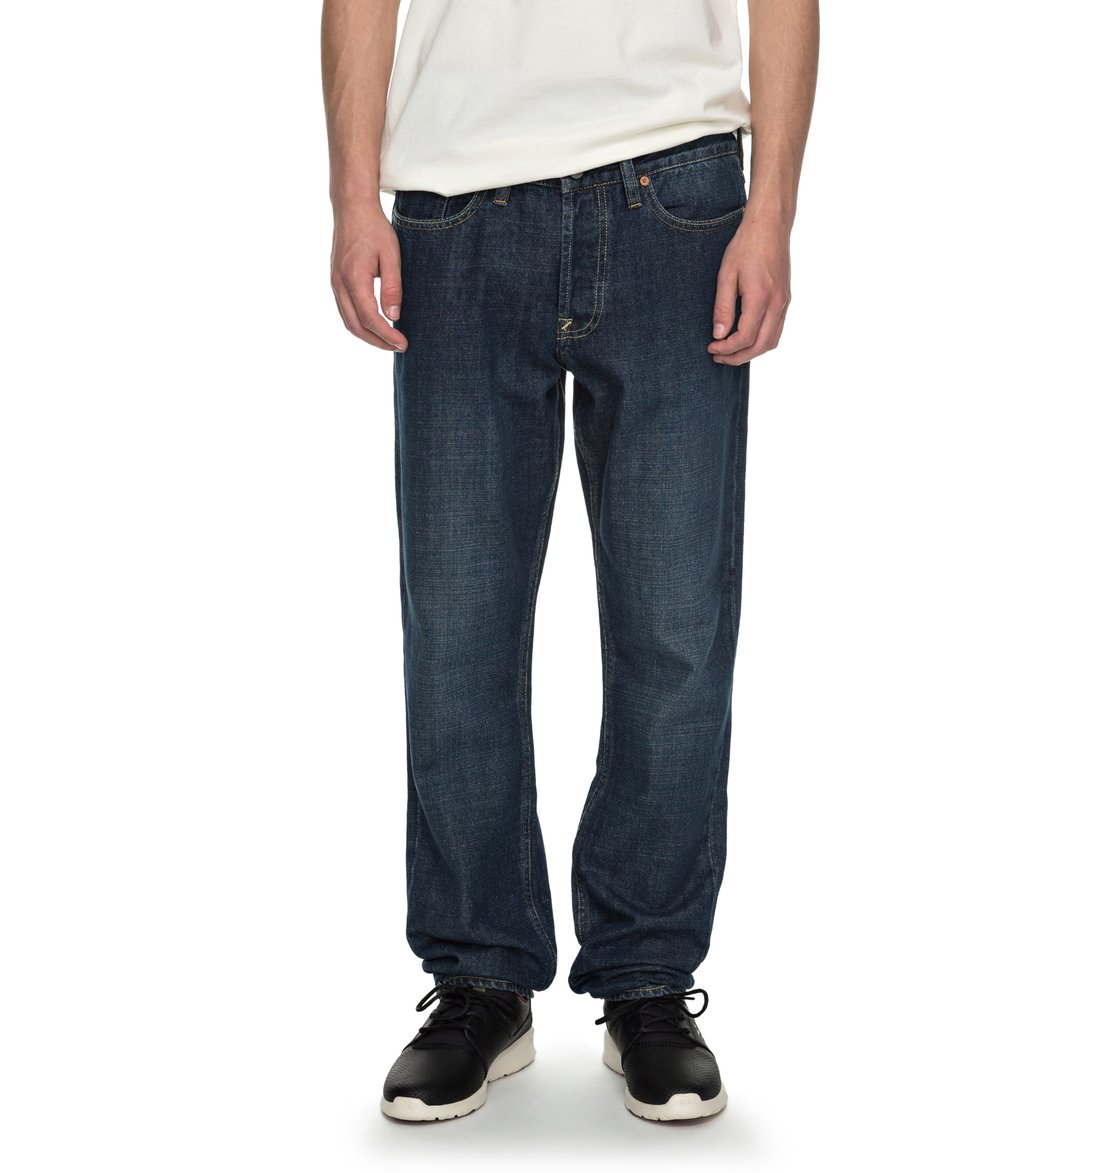 Jeans Coupe Droite Worker Stone Wash Jean Coupe Droite Pour Homme